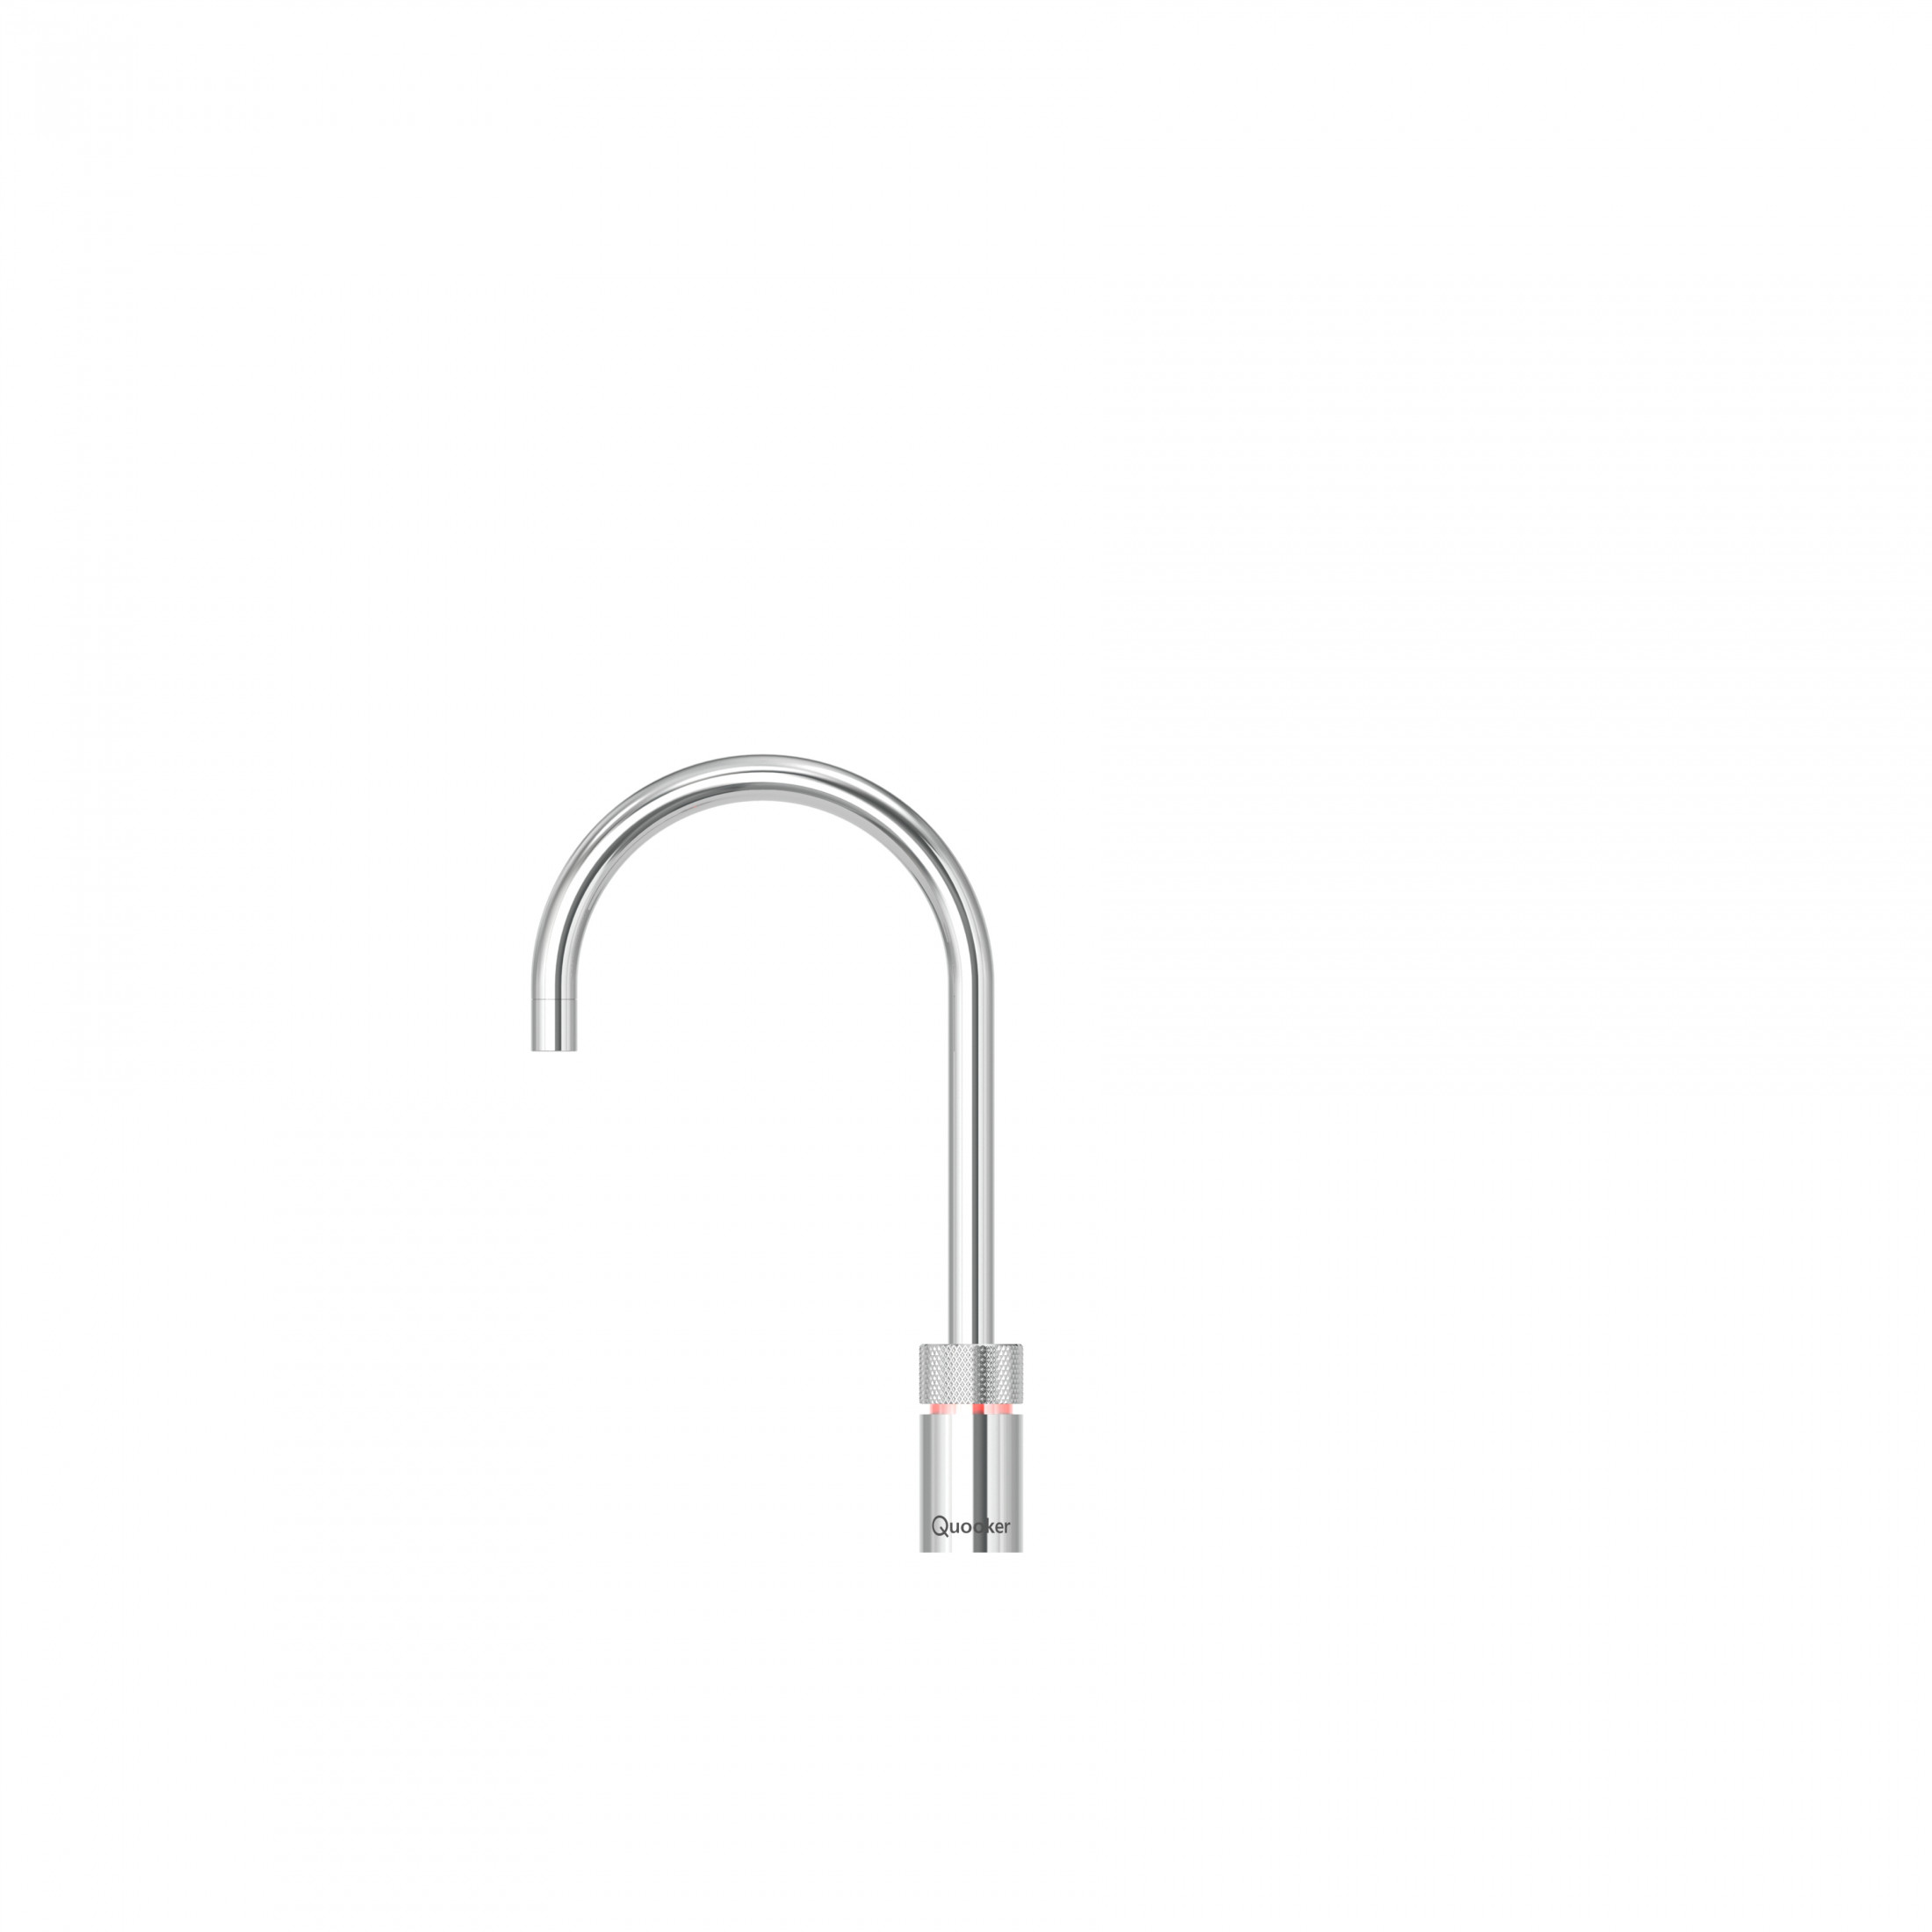 Quooker Nordic Round Chrome Instant Boiling Water Kitchen Tap 3NRCHR